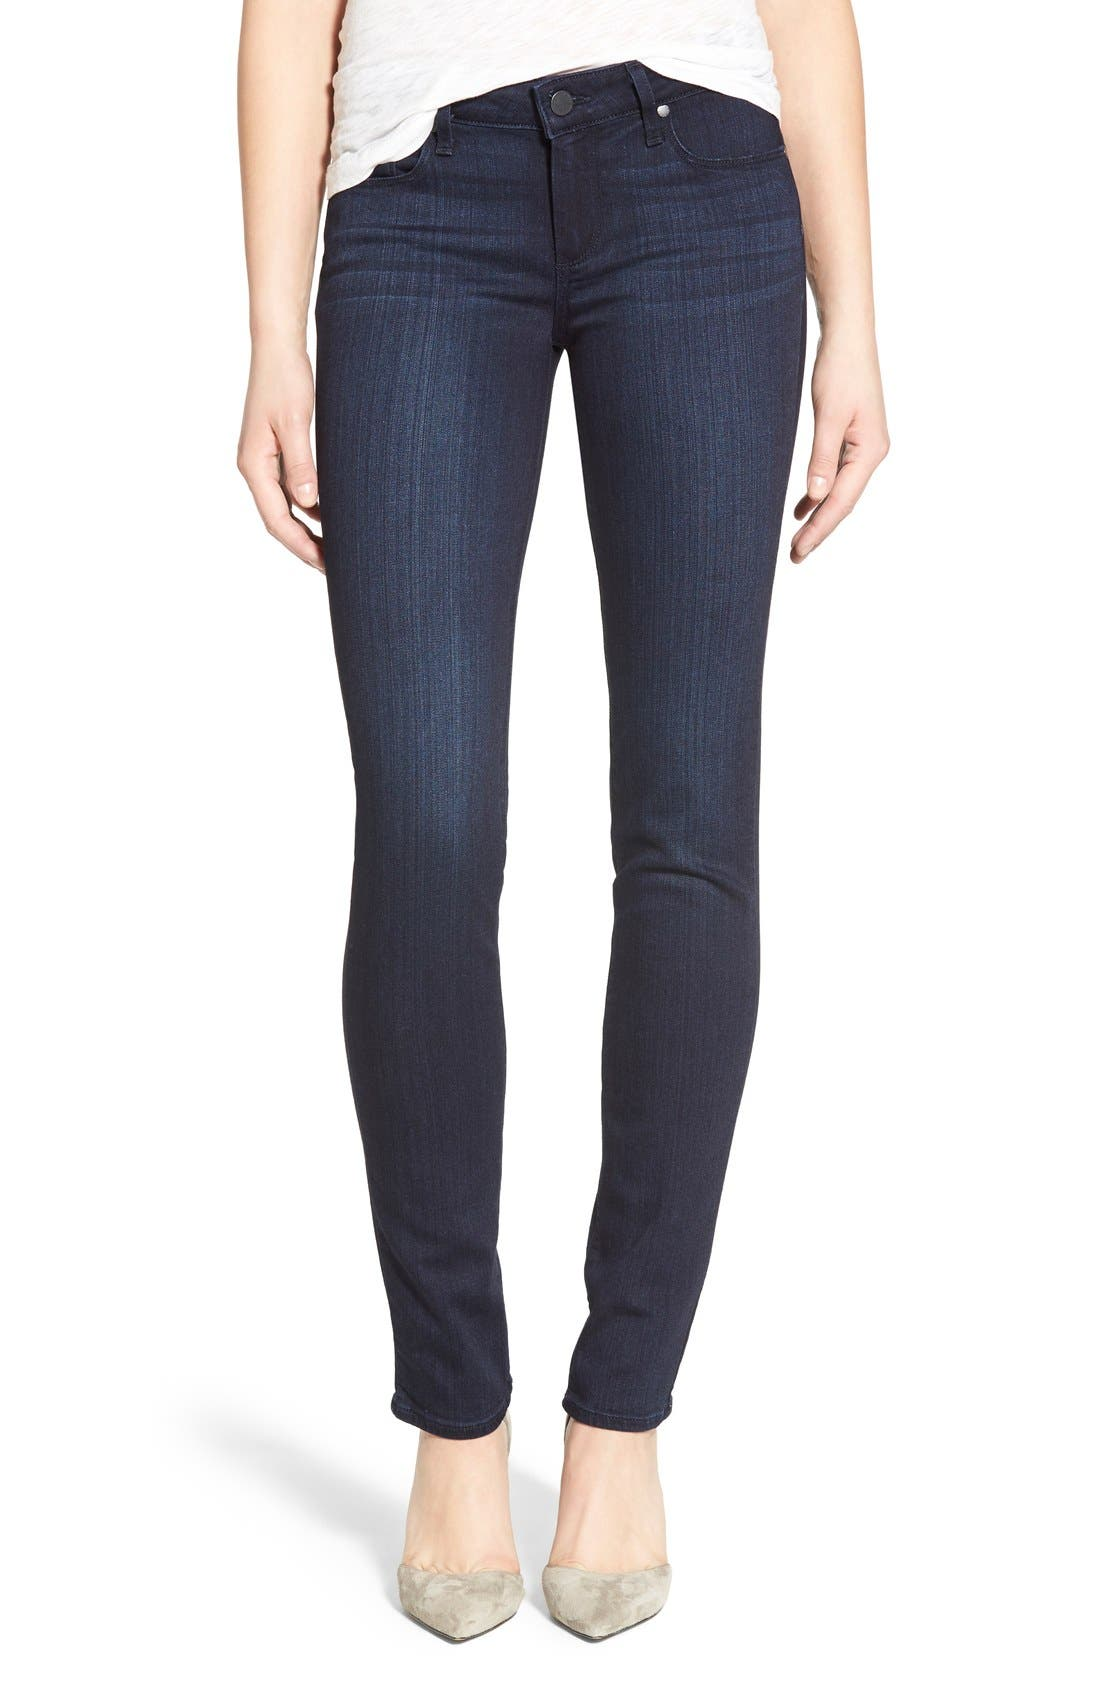 Main Image - PAIGE 'Skyline' Skinny Jeans (Everdeen) (Nordstrom Exclusive)